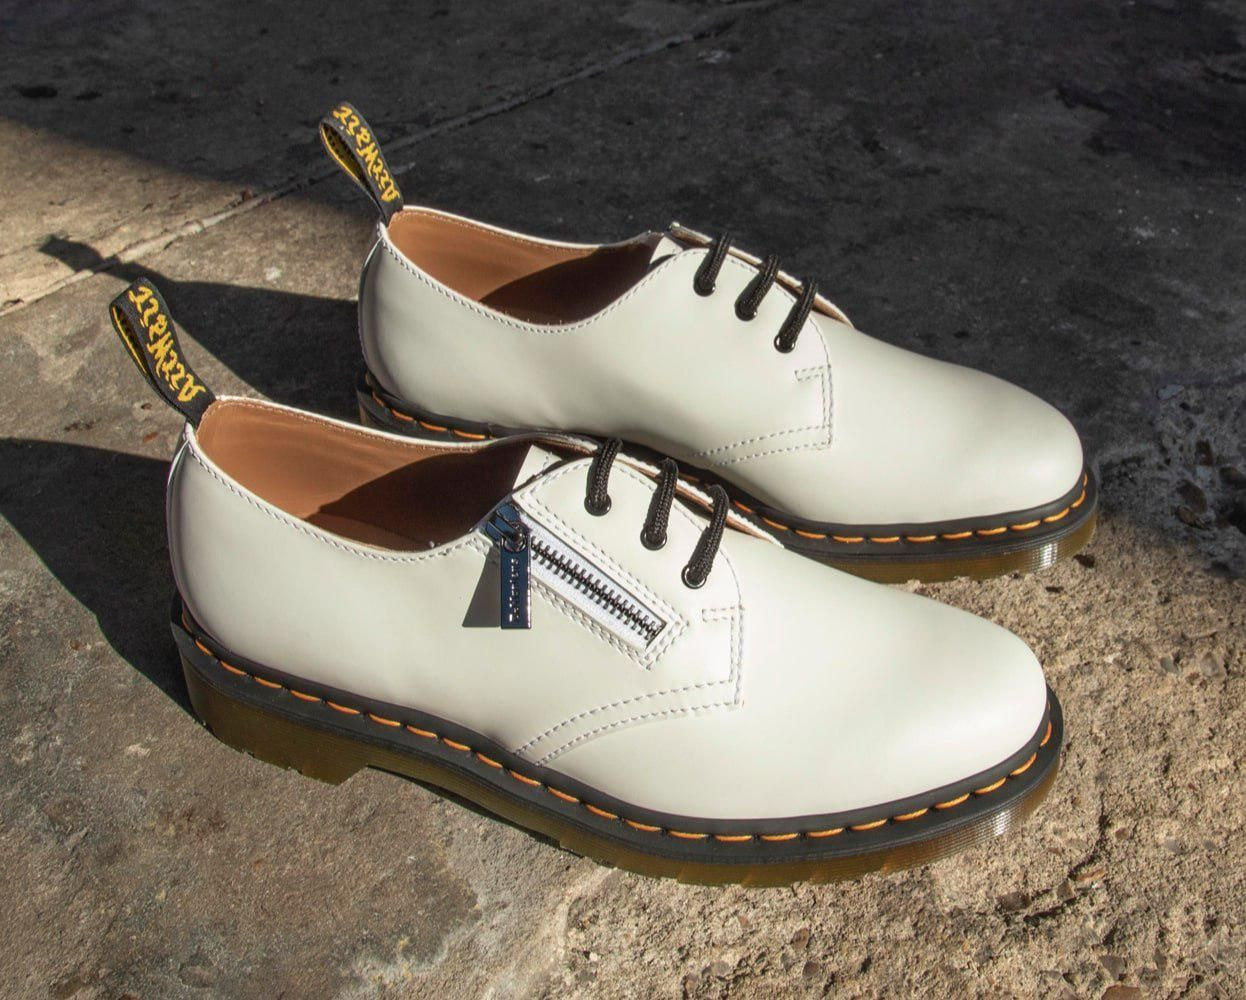 BEAMS Dr. Martens Zipper or Patent Leather Derby | HYPEBEAST